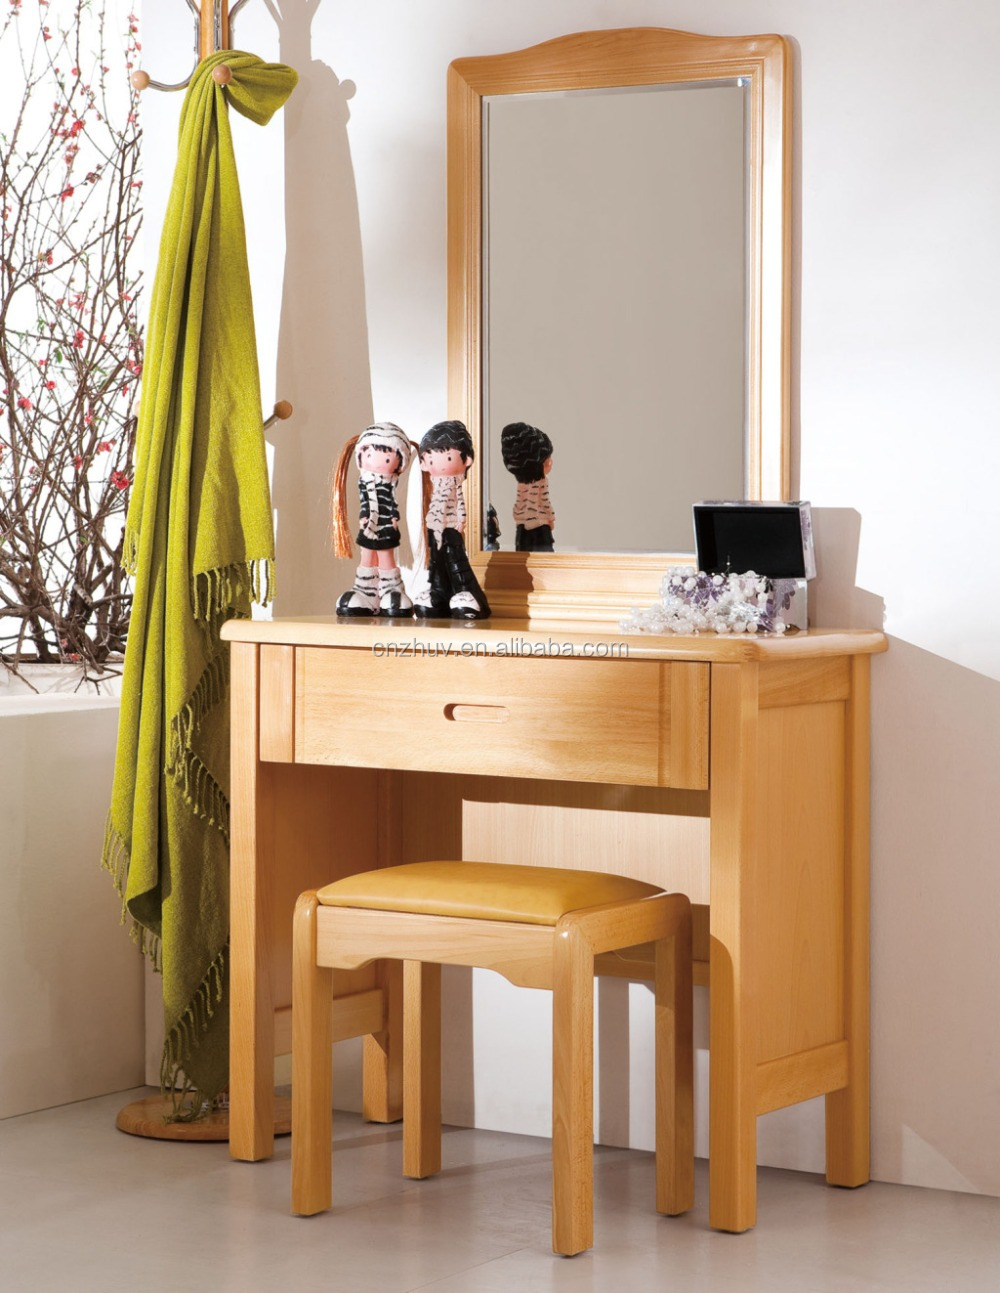 Antique dressing table with mirror - Antique Dressing Table With Mirror And Stool Antique Dressing Table With Mirror And Stool Suppliers And Manufacturers At Alibaba Com